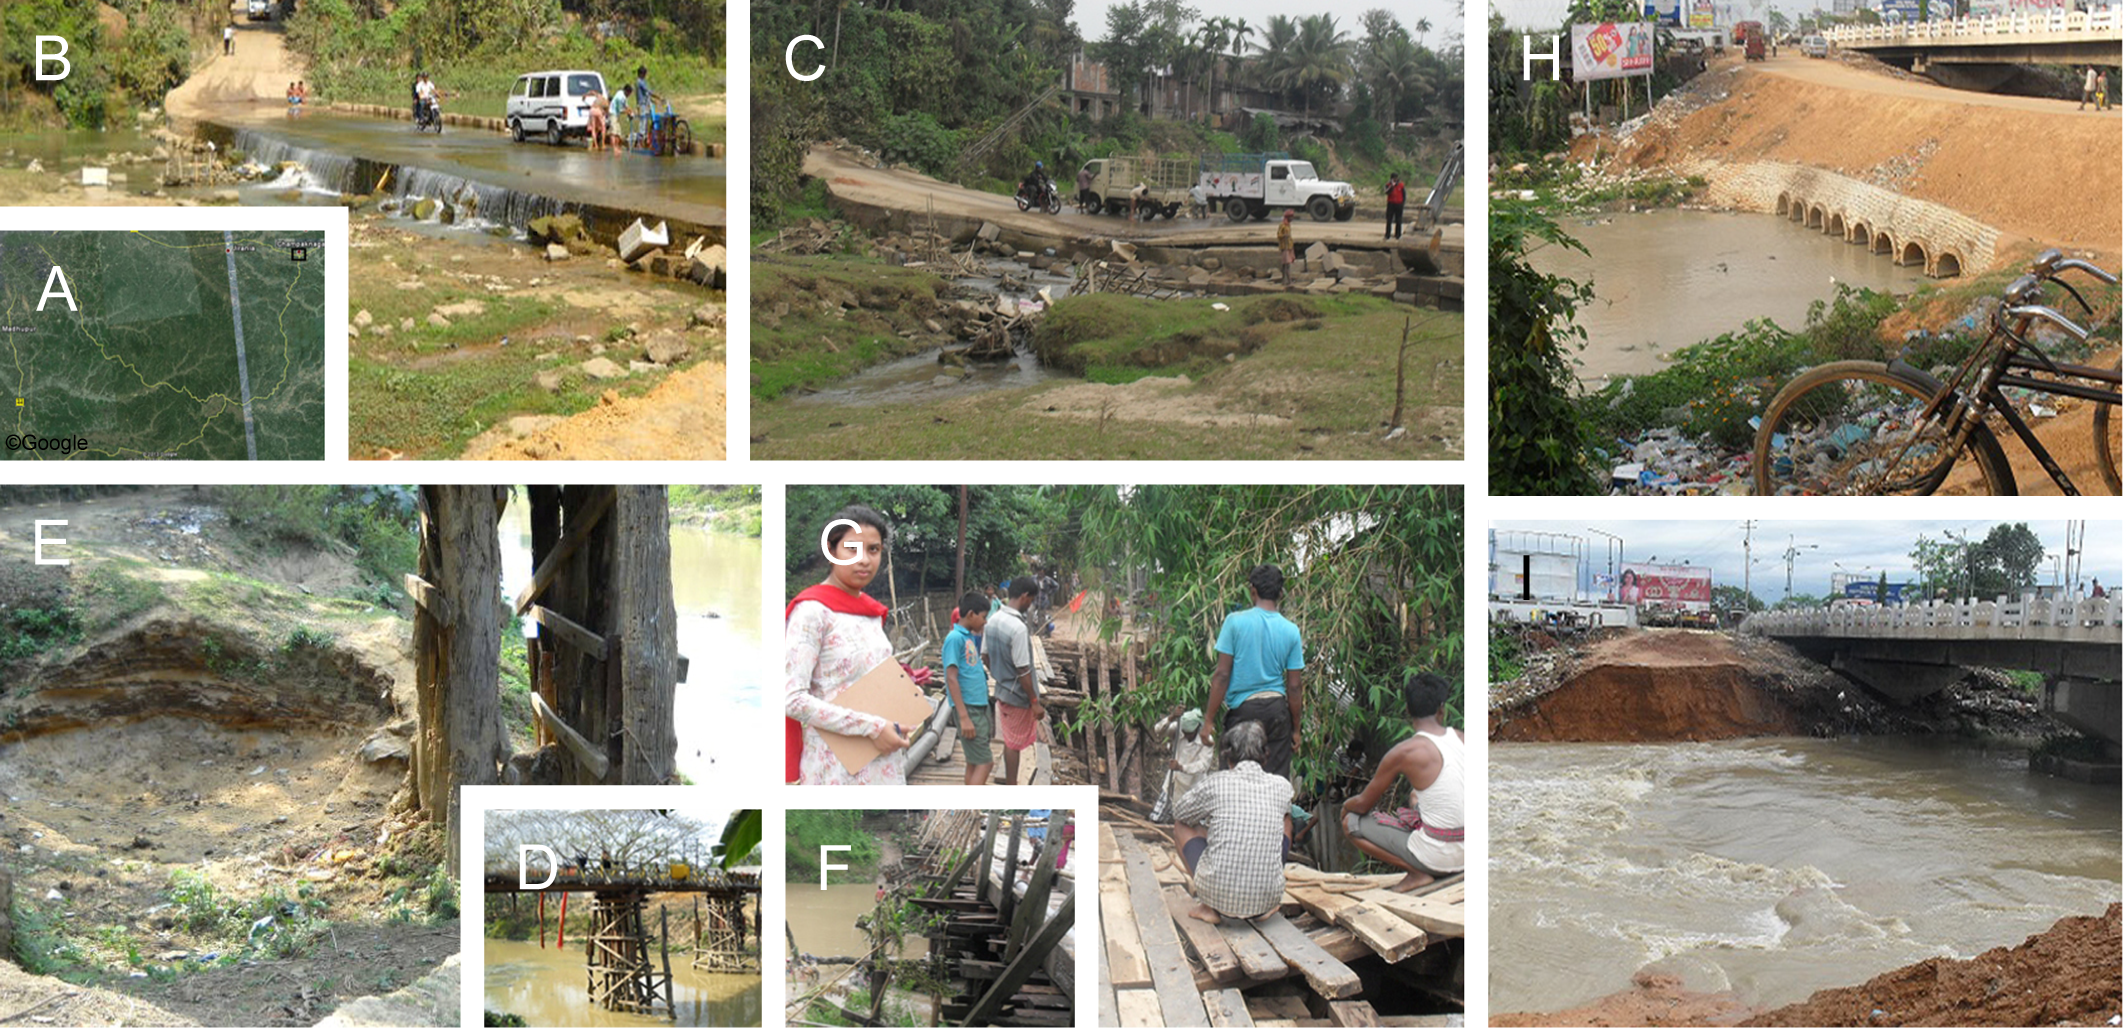 Anthropogenic Impacts On The Morphology Of The Haora River